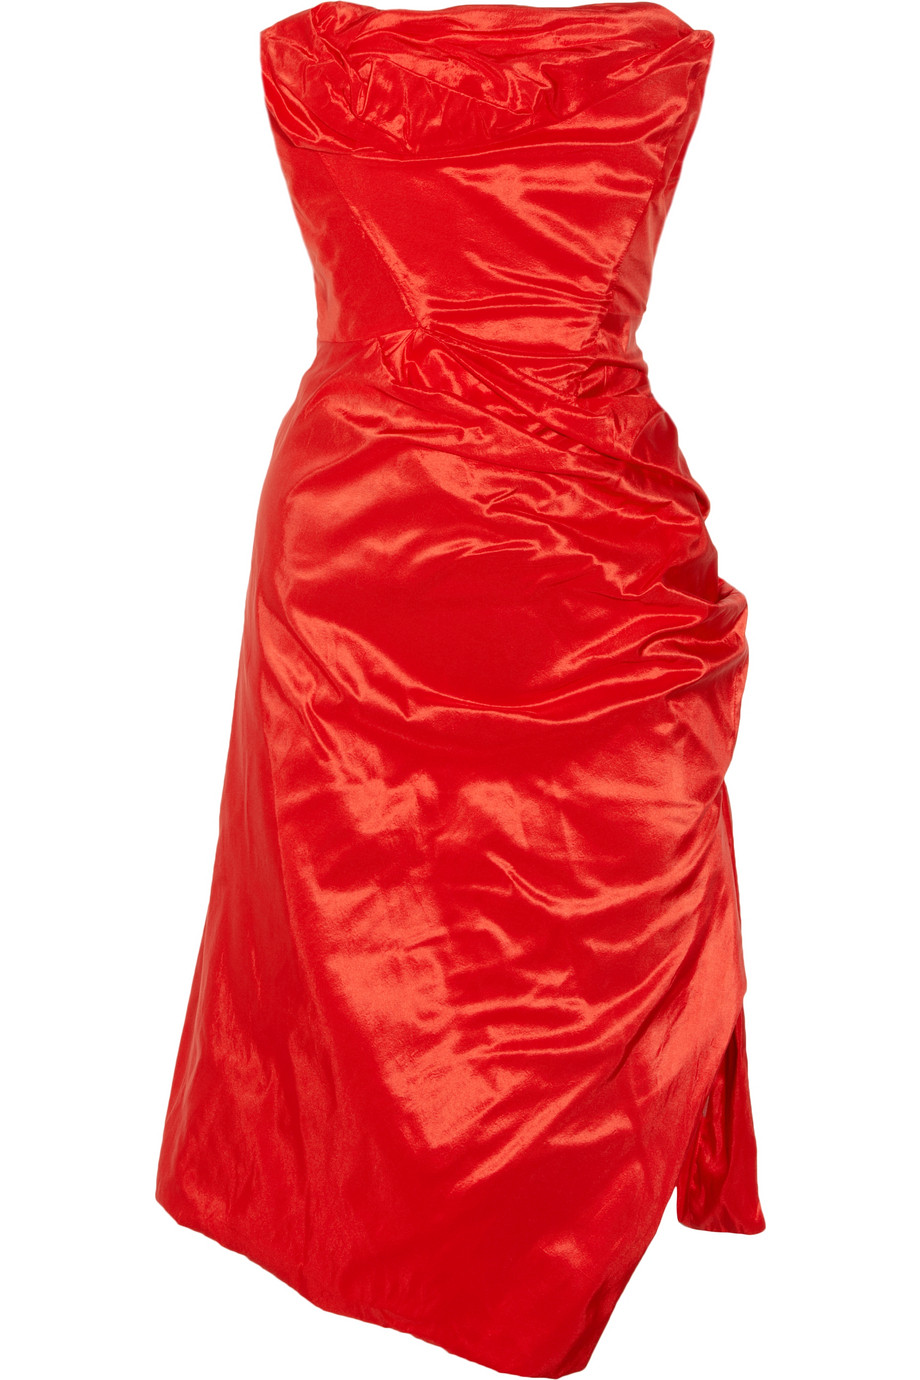 Lyst - Vivienne Westwood Gold Label Corseted Silk-taffeta Dress in Red